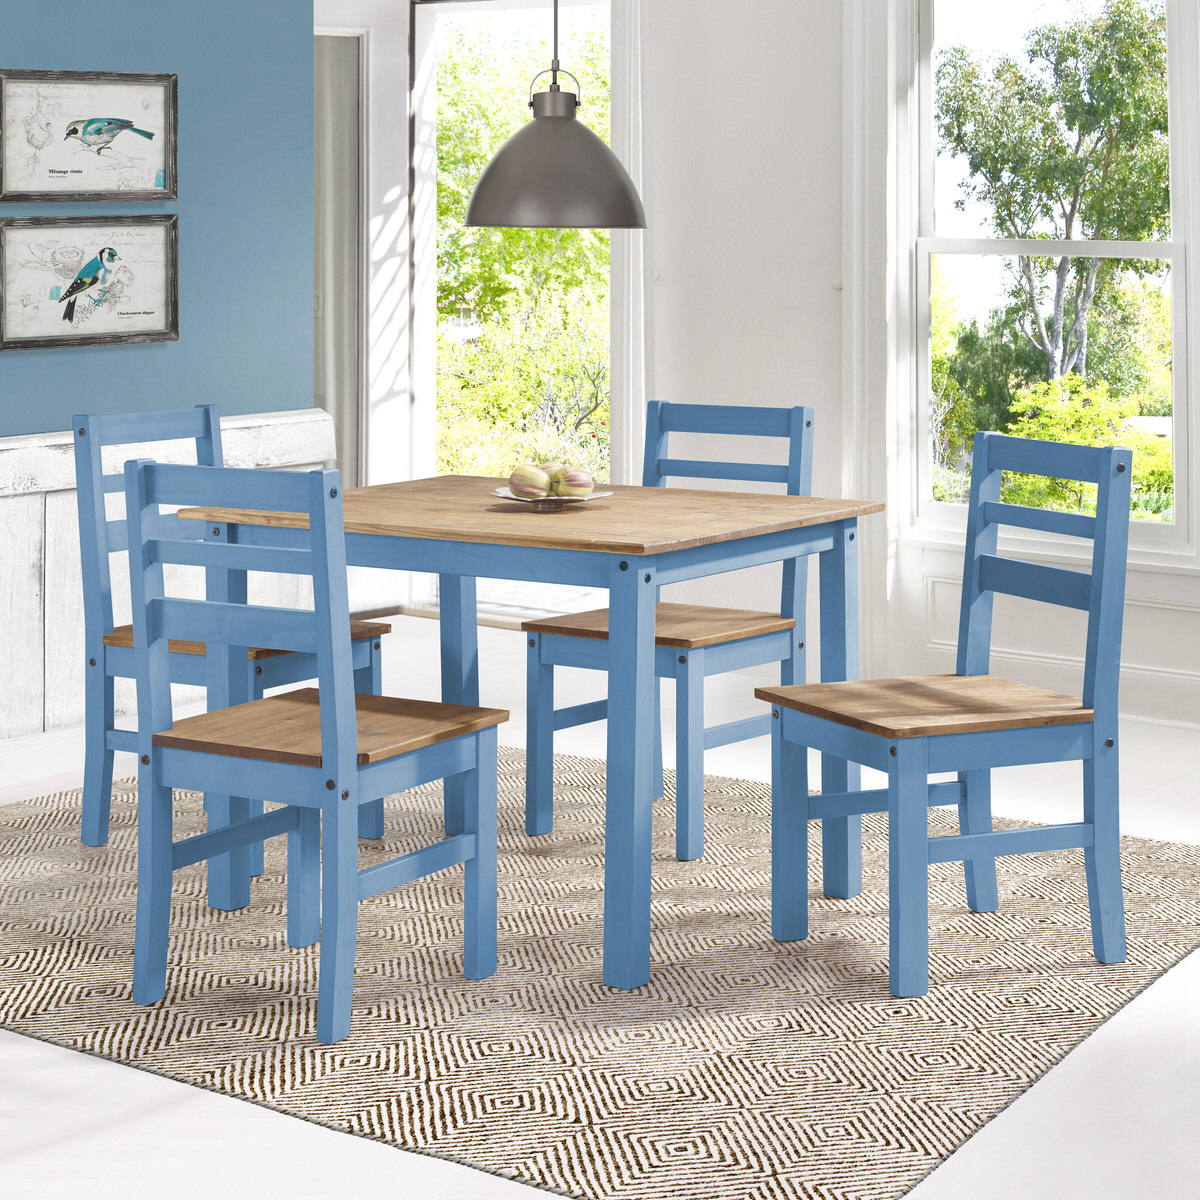 Maiden Blue Wash 5-Piece Solid Wood Dining Set by Manhattan Comfort